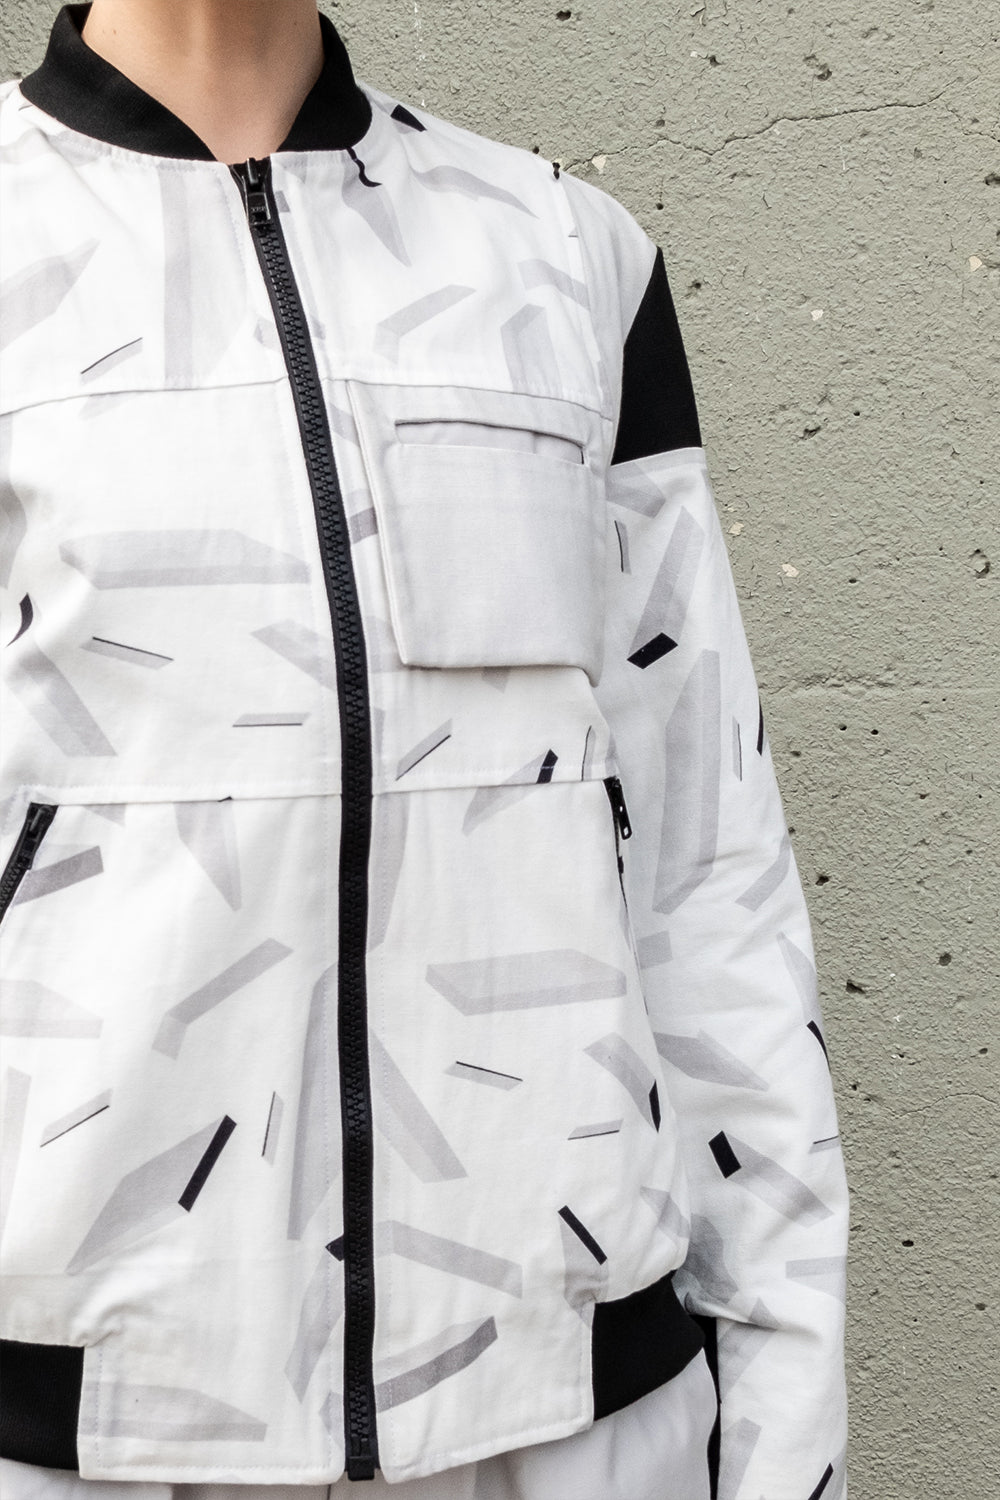 Space Debris Bomber Jacket | EDITION OF 50